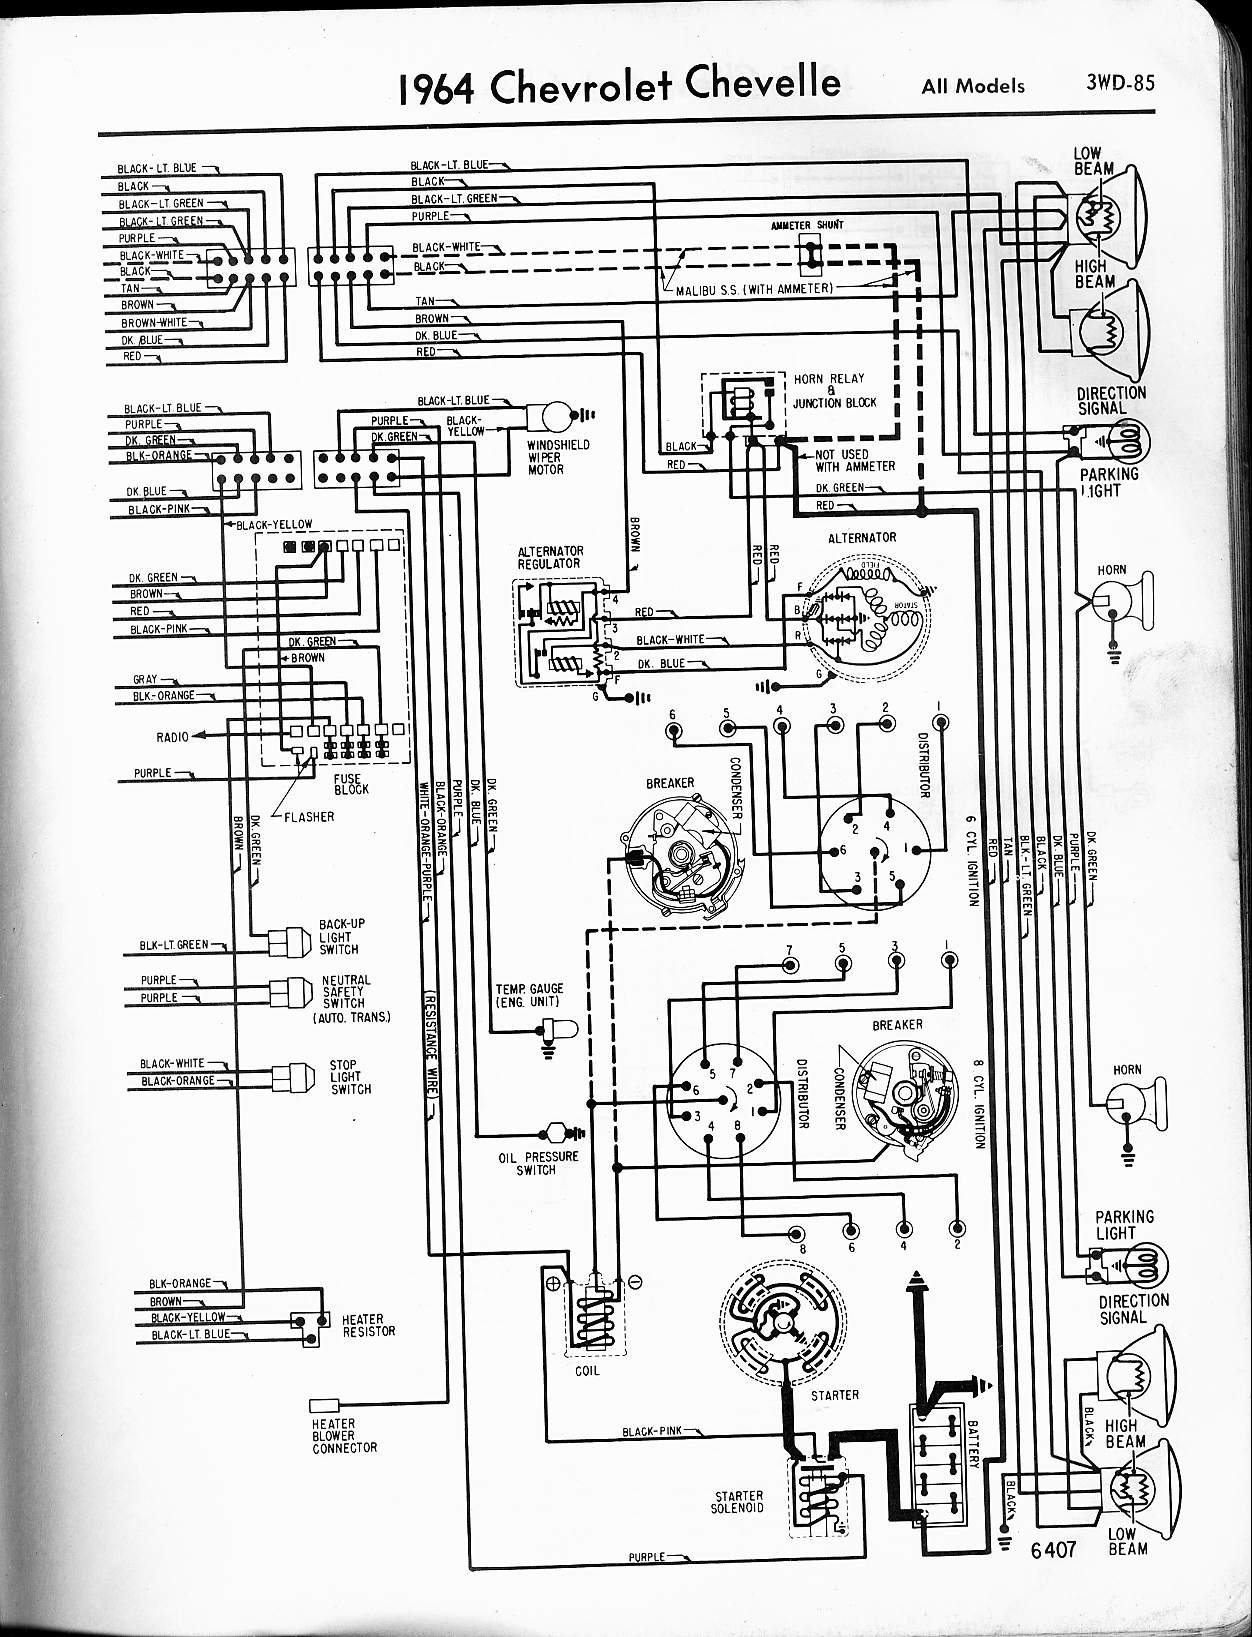 1980 Toyota Truck Wiring Diagram - wiring diagram installation-when -  installation-when.labottegadisilvia.it | 1980 Chevy 1980 Pick Up Alternator Wiring Diagram |  | installation-when.labottegadisilvia.it